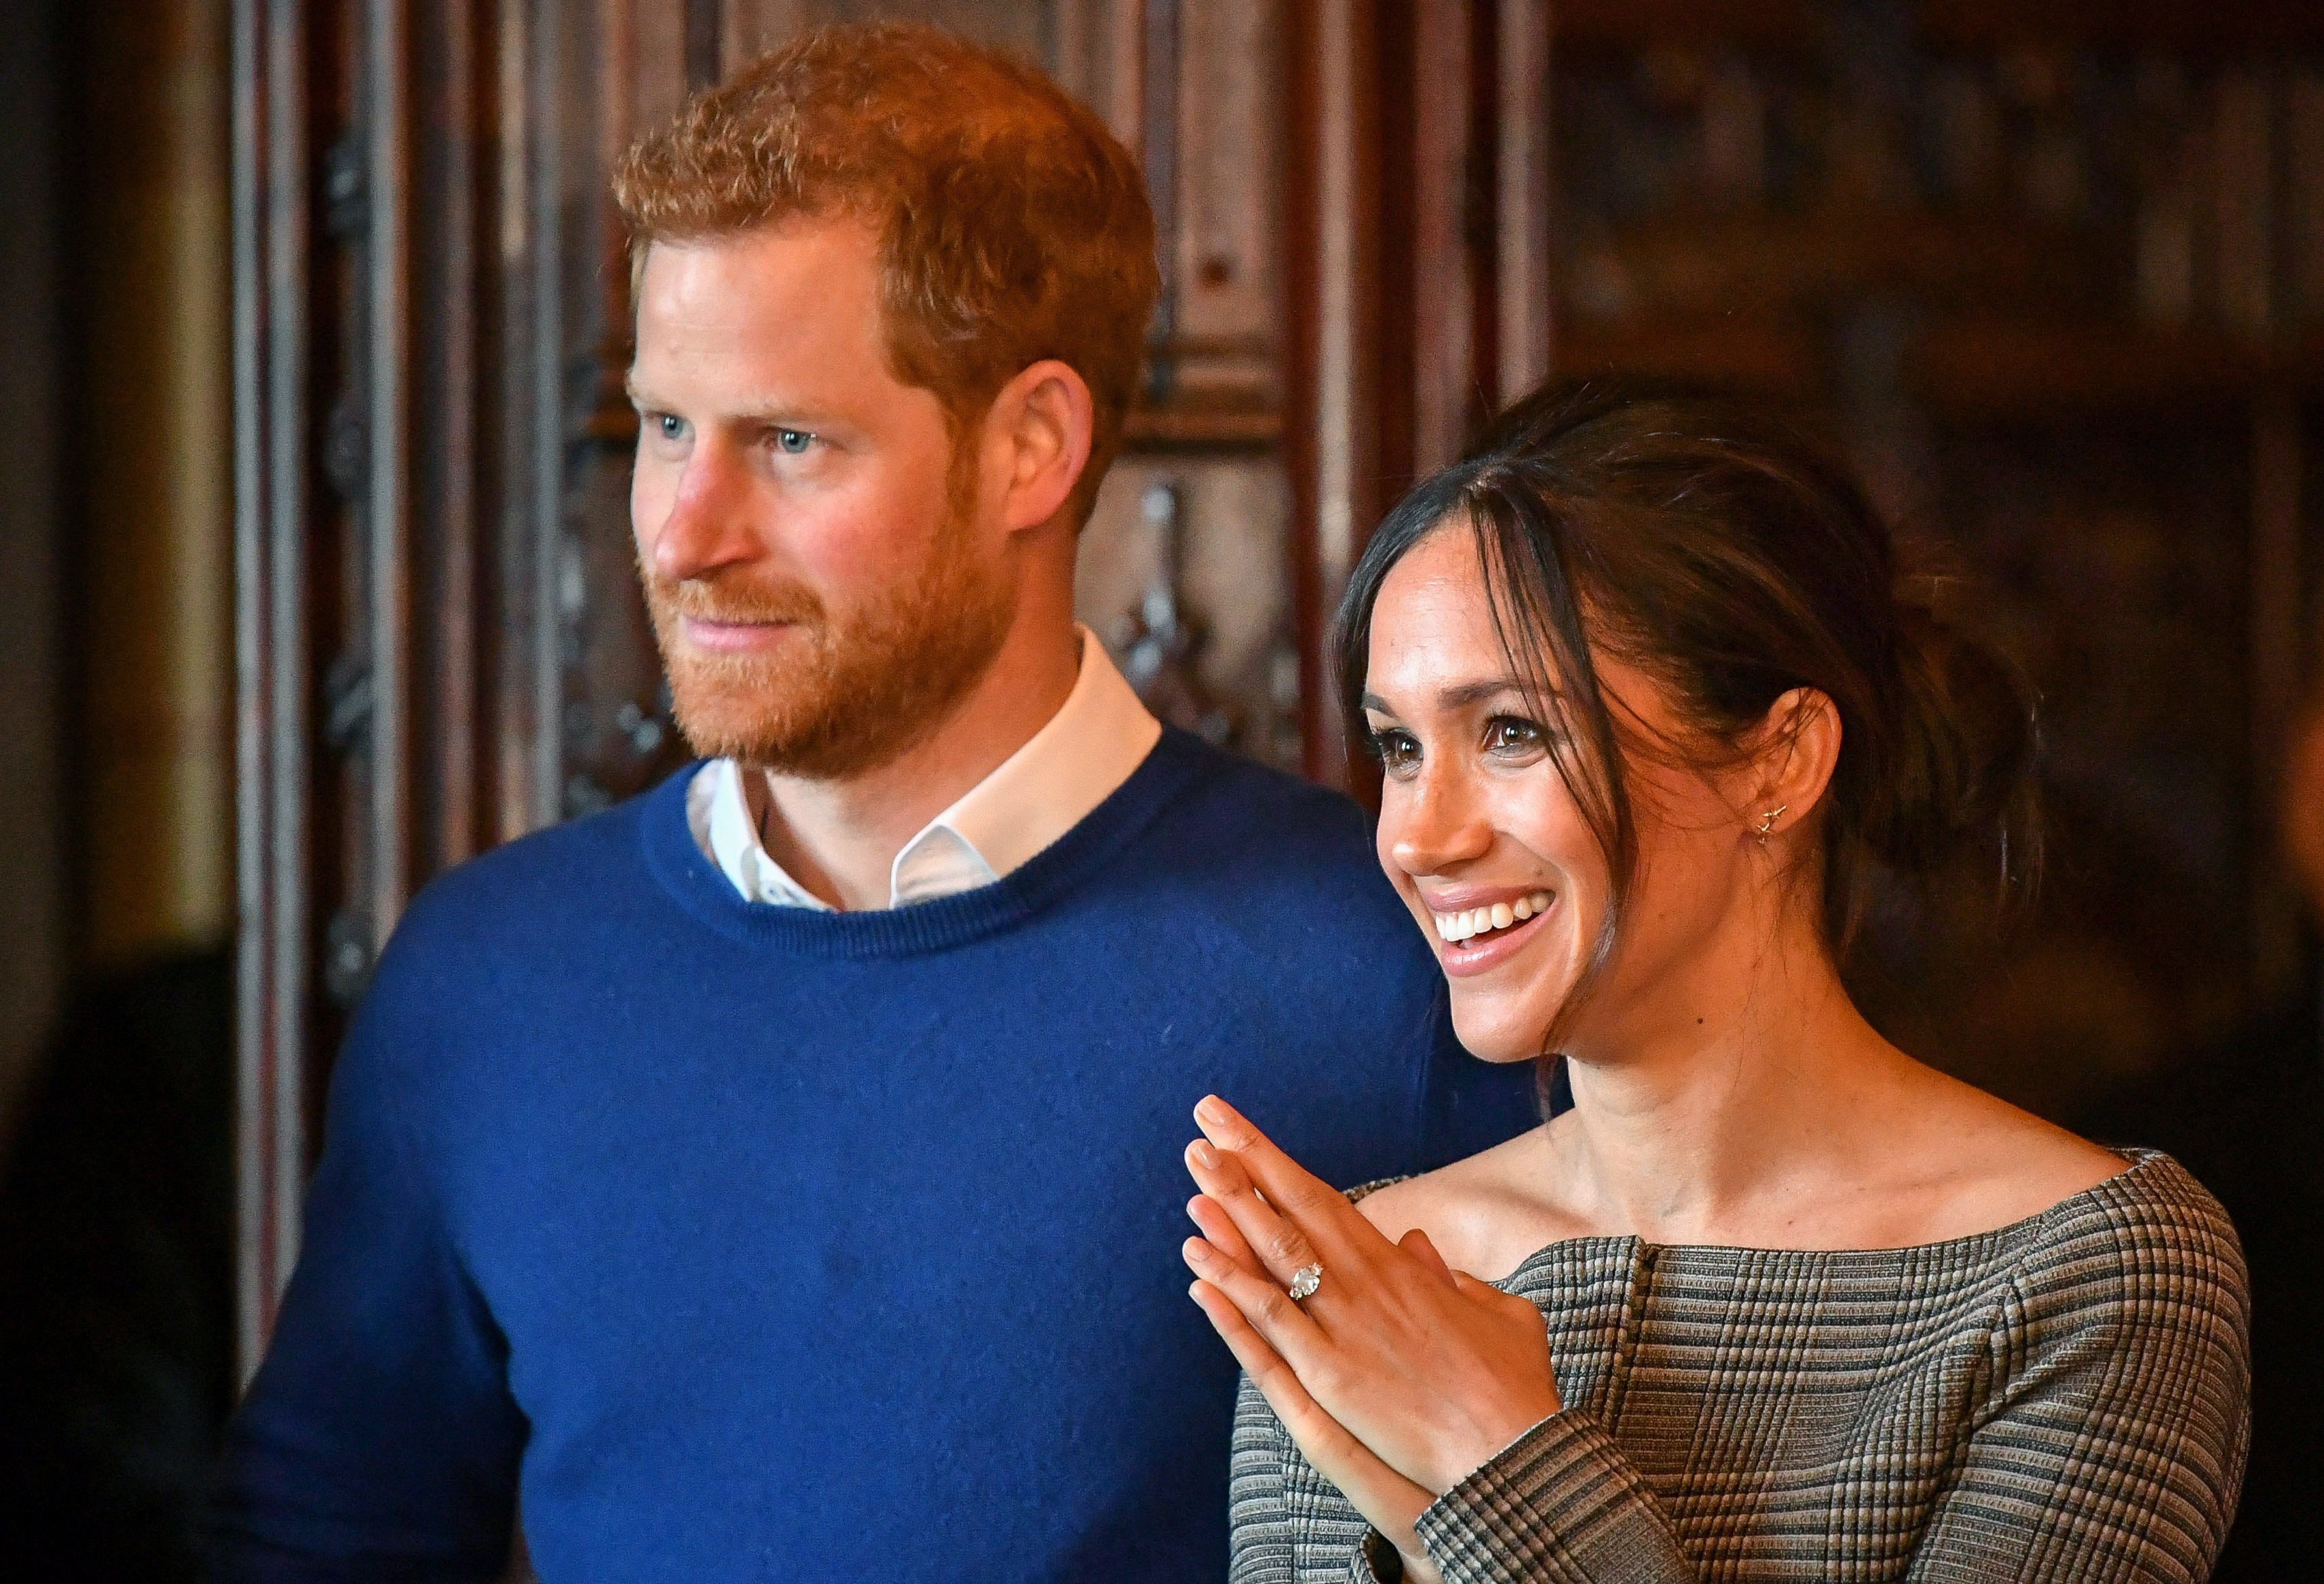 Prince Harry and Meghan Markle watch a performance by a Welsh choir in the banqueting hall during a visit to Cardiff Castle on January 18, 2018|Photo: Getty Images